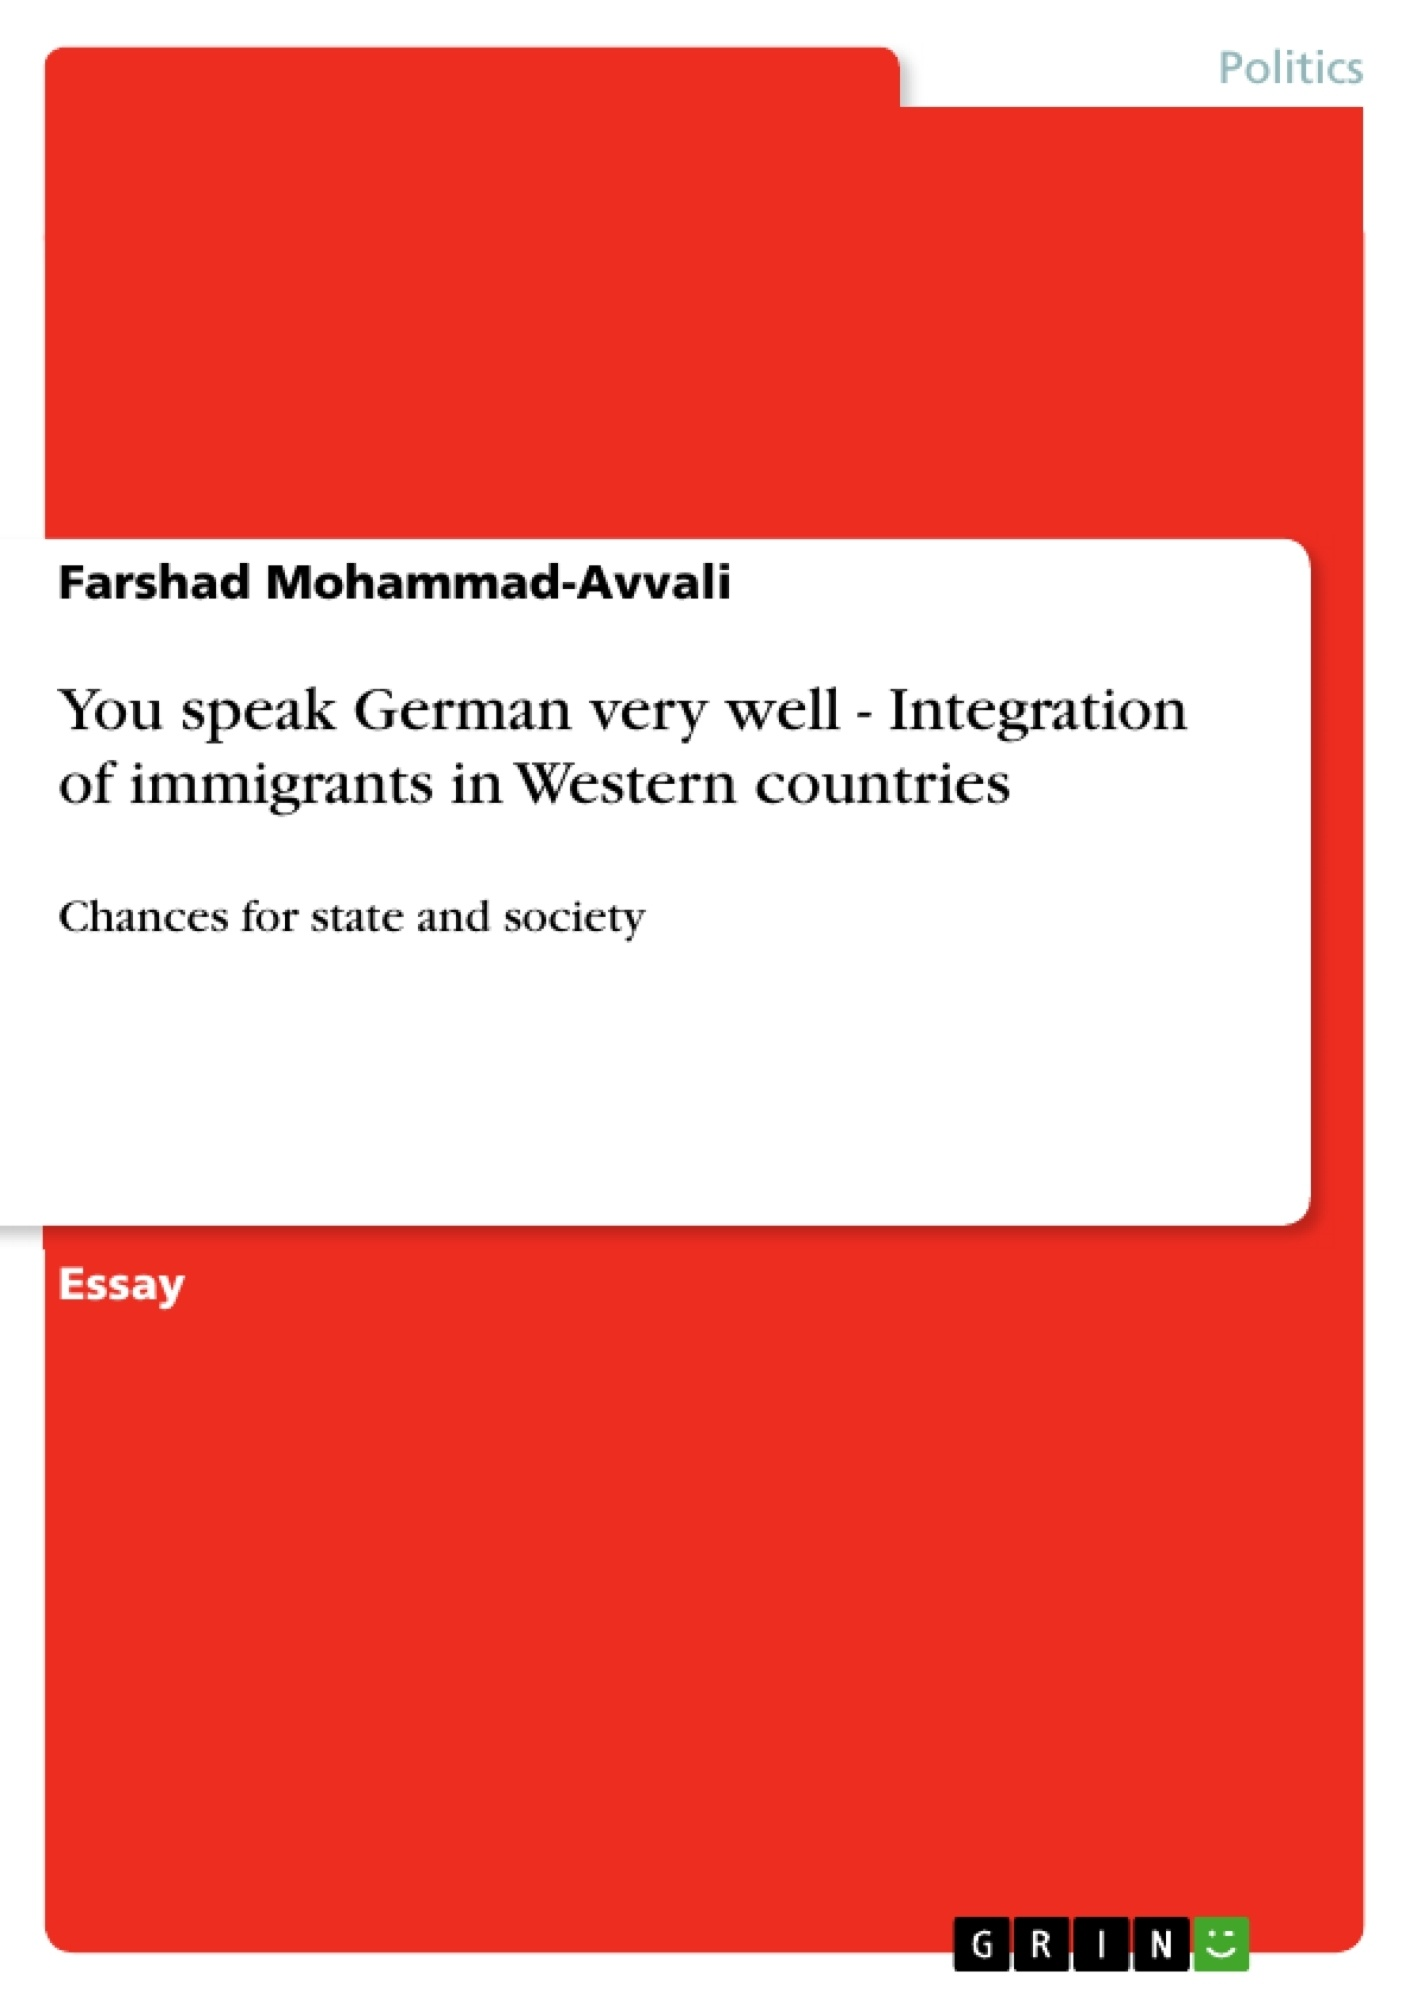 Title: You speak German very well - Integration of immigrants in Western countries